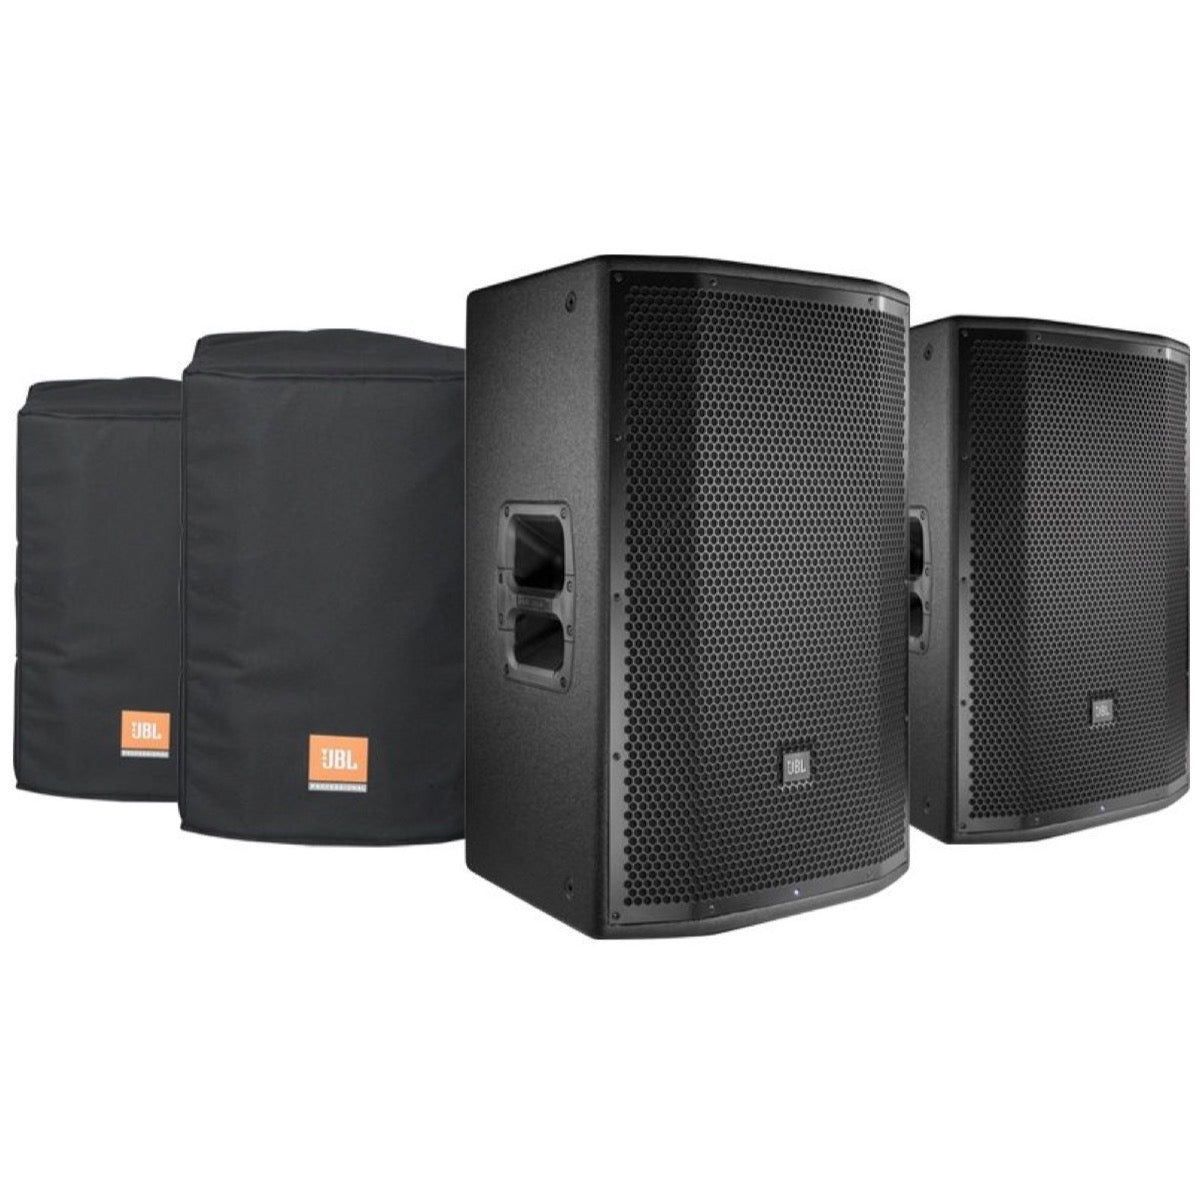 JBL PRX815 Powered Speaker (1500 Watts), Pair, with JBL PRX815-CVR Deluxe Padded Covers